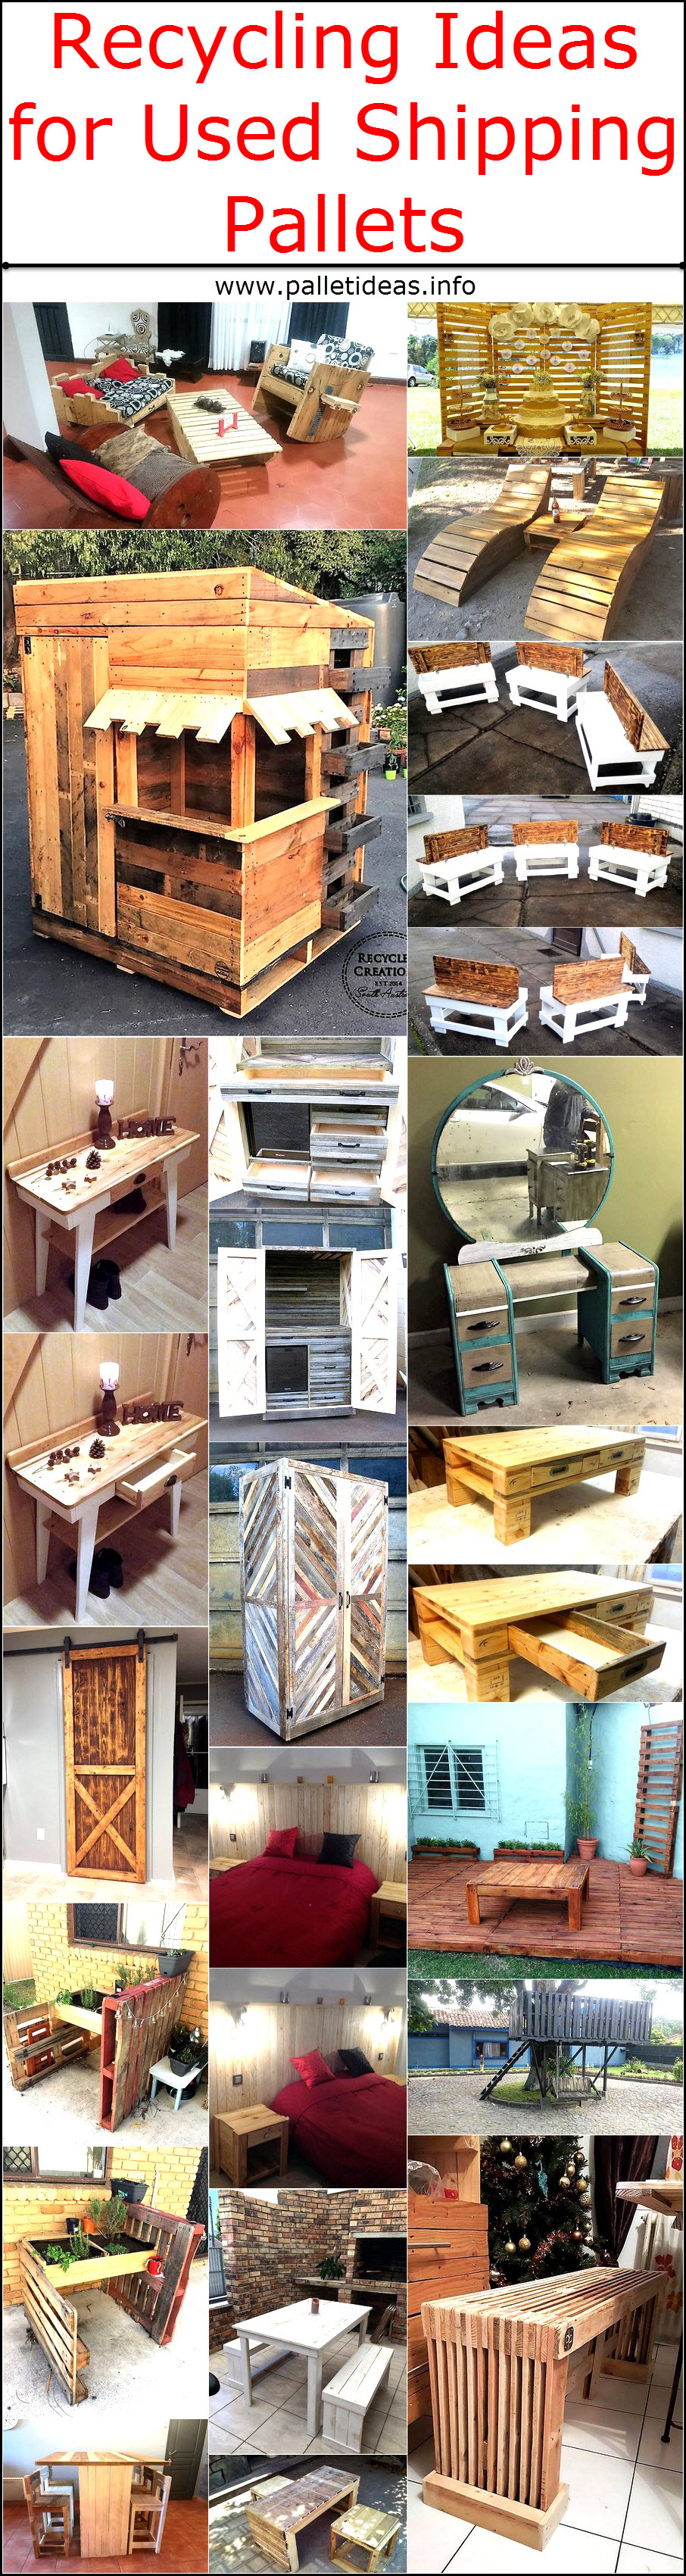 recycling-ideas-for-used-shipping-pallets